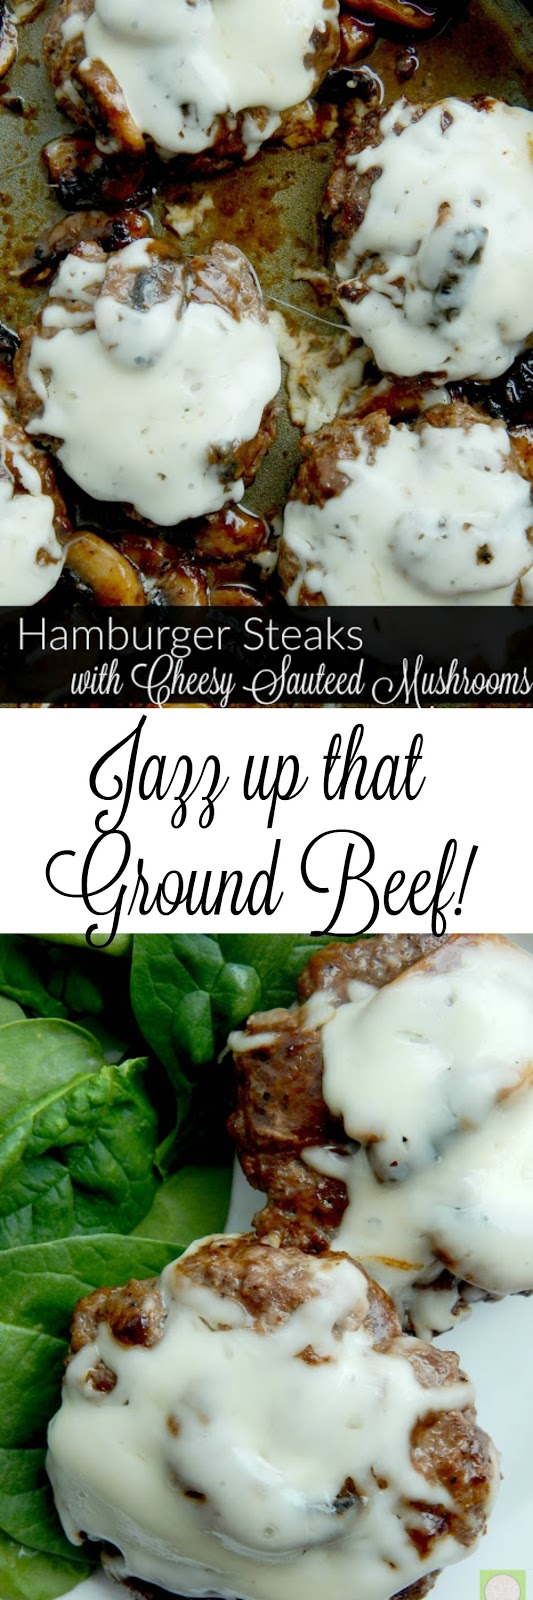 hamburger steaks with cheesy sauteed mushrooms (sweetandsavoryfood.com)